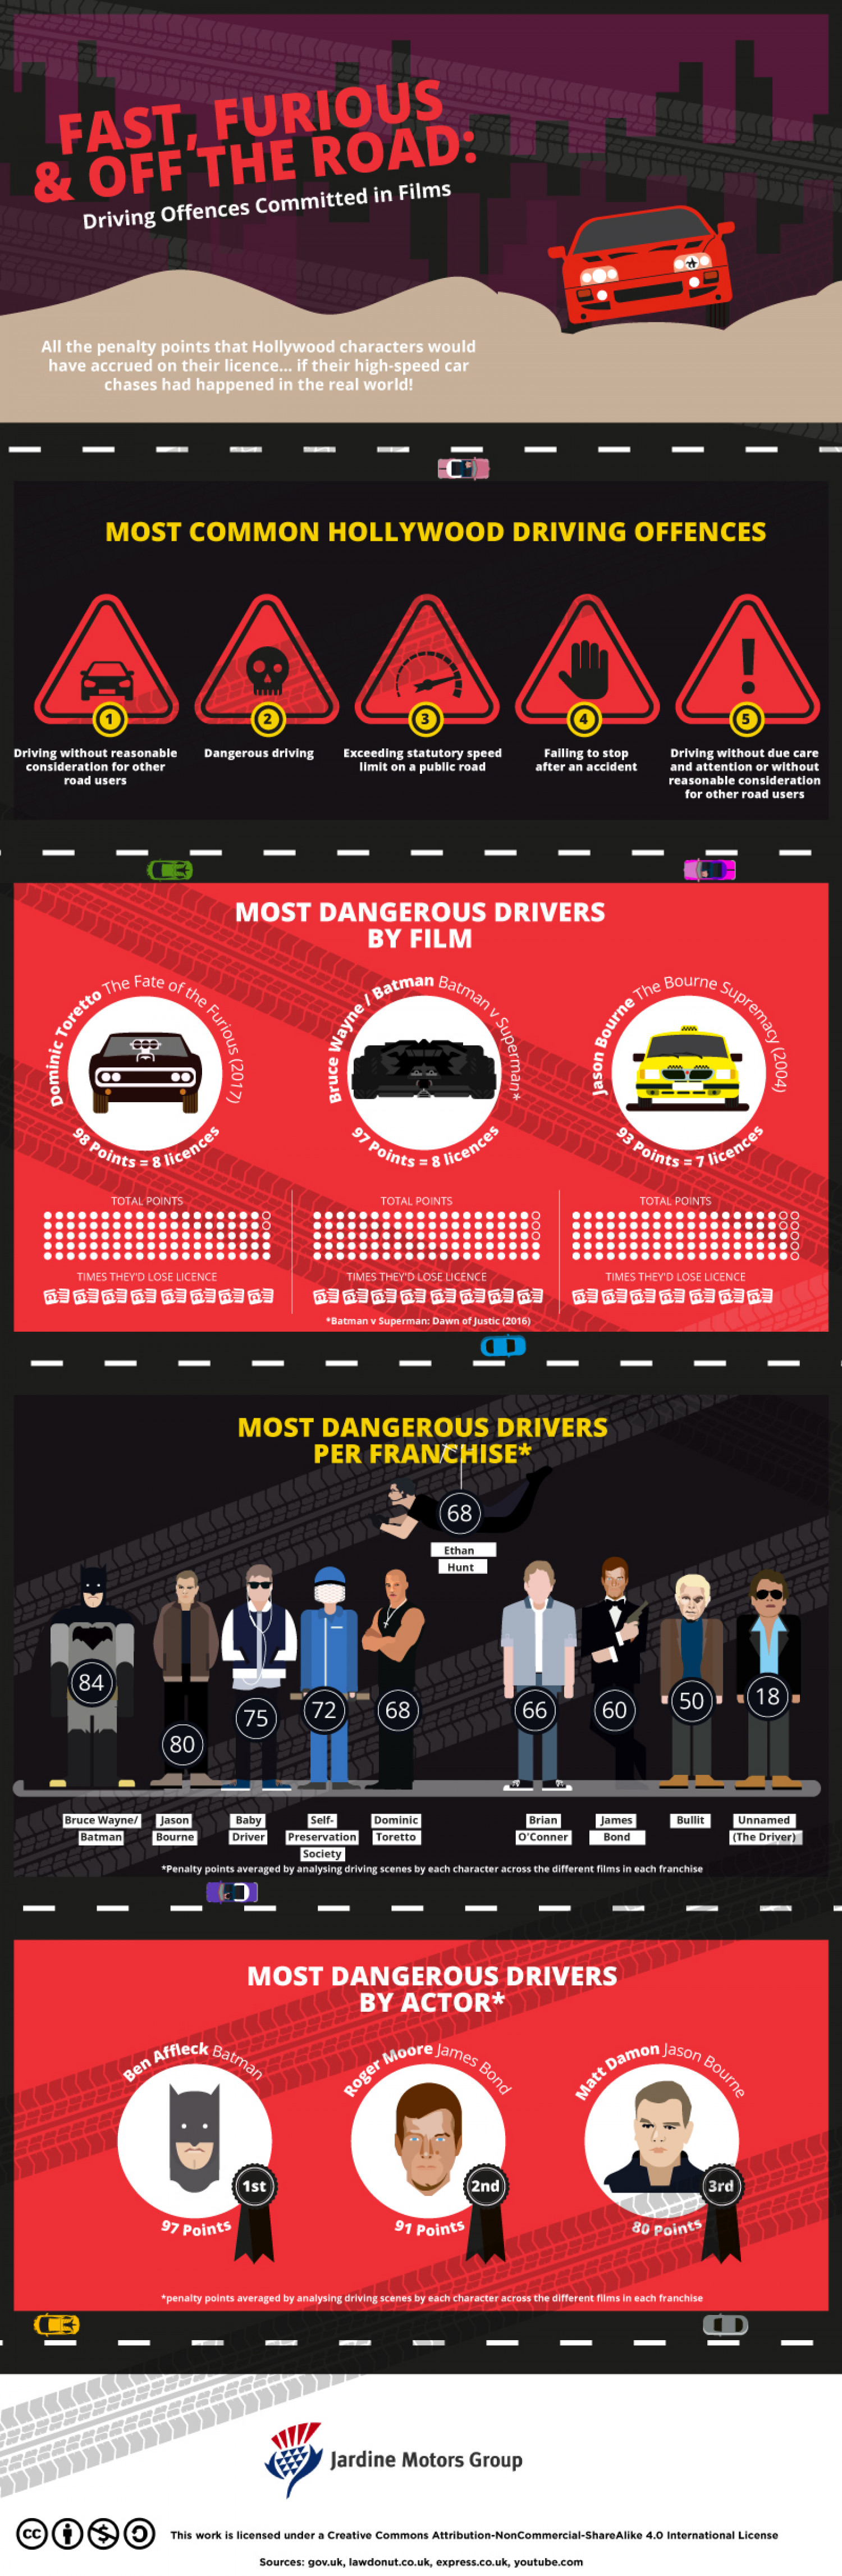 Fast, Furious & Off the Road Infographic